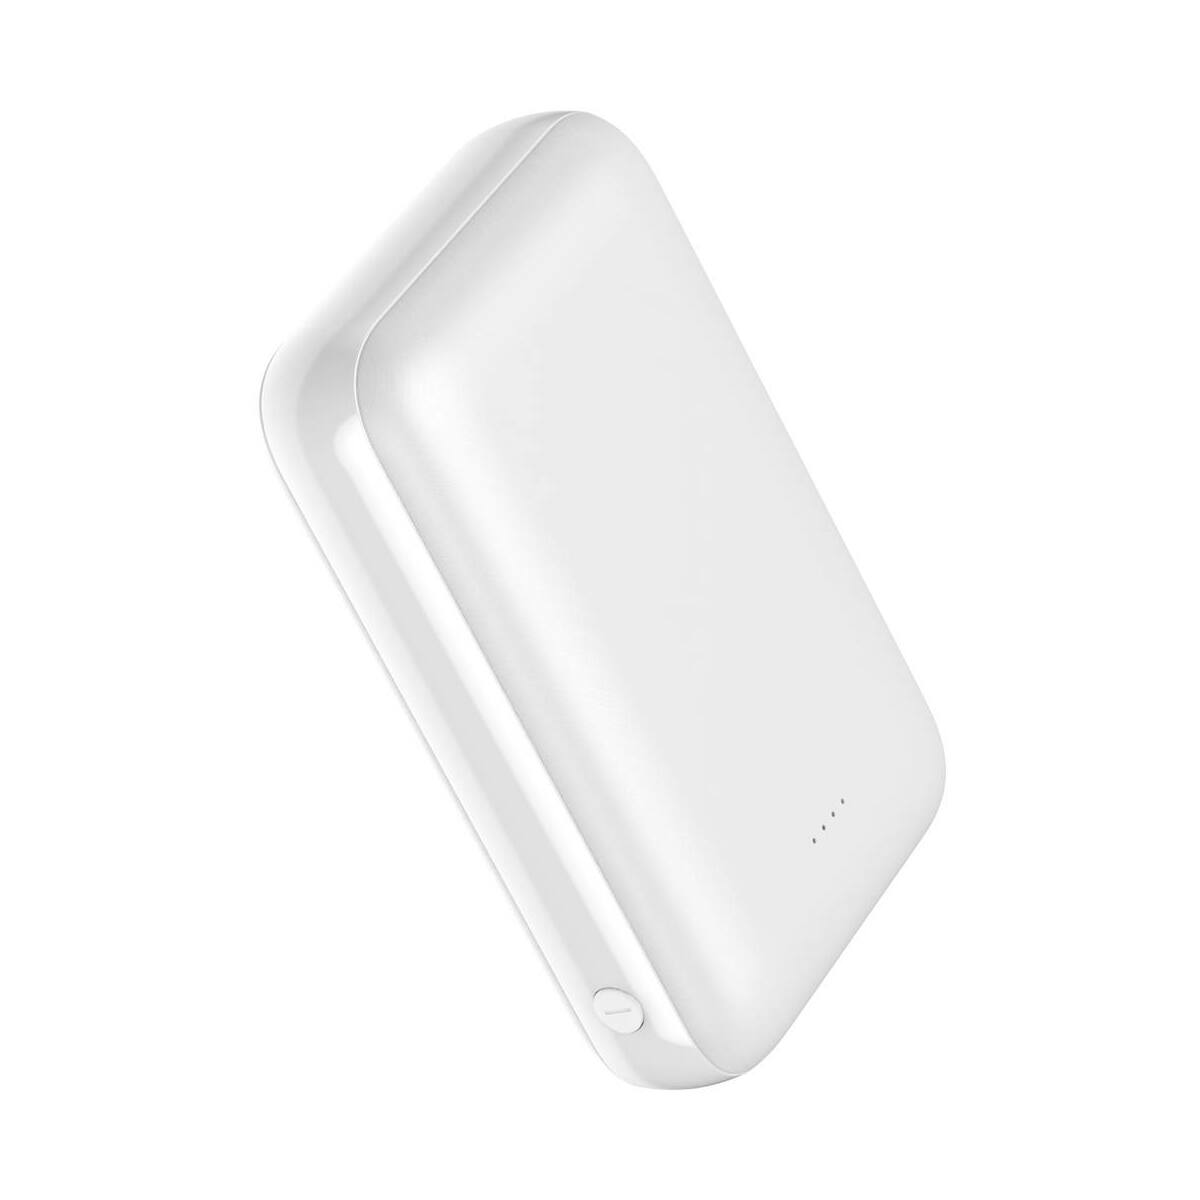 Baseus Power Bank Mini JA 10.000 mAh, fehér (PPJAN-A02)